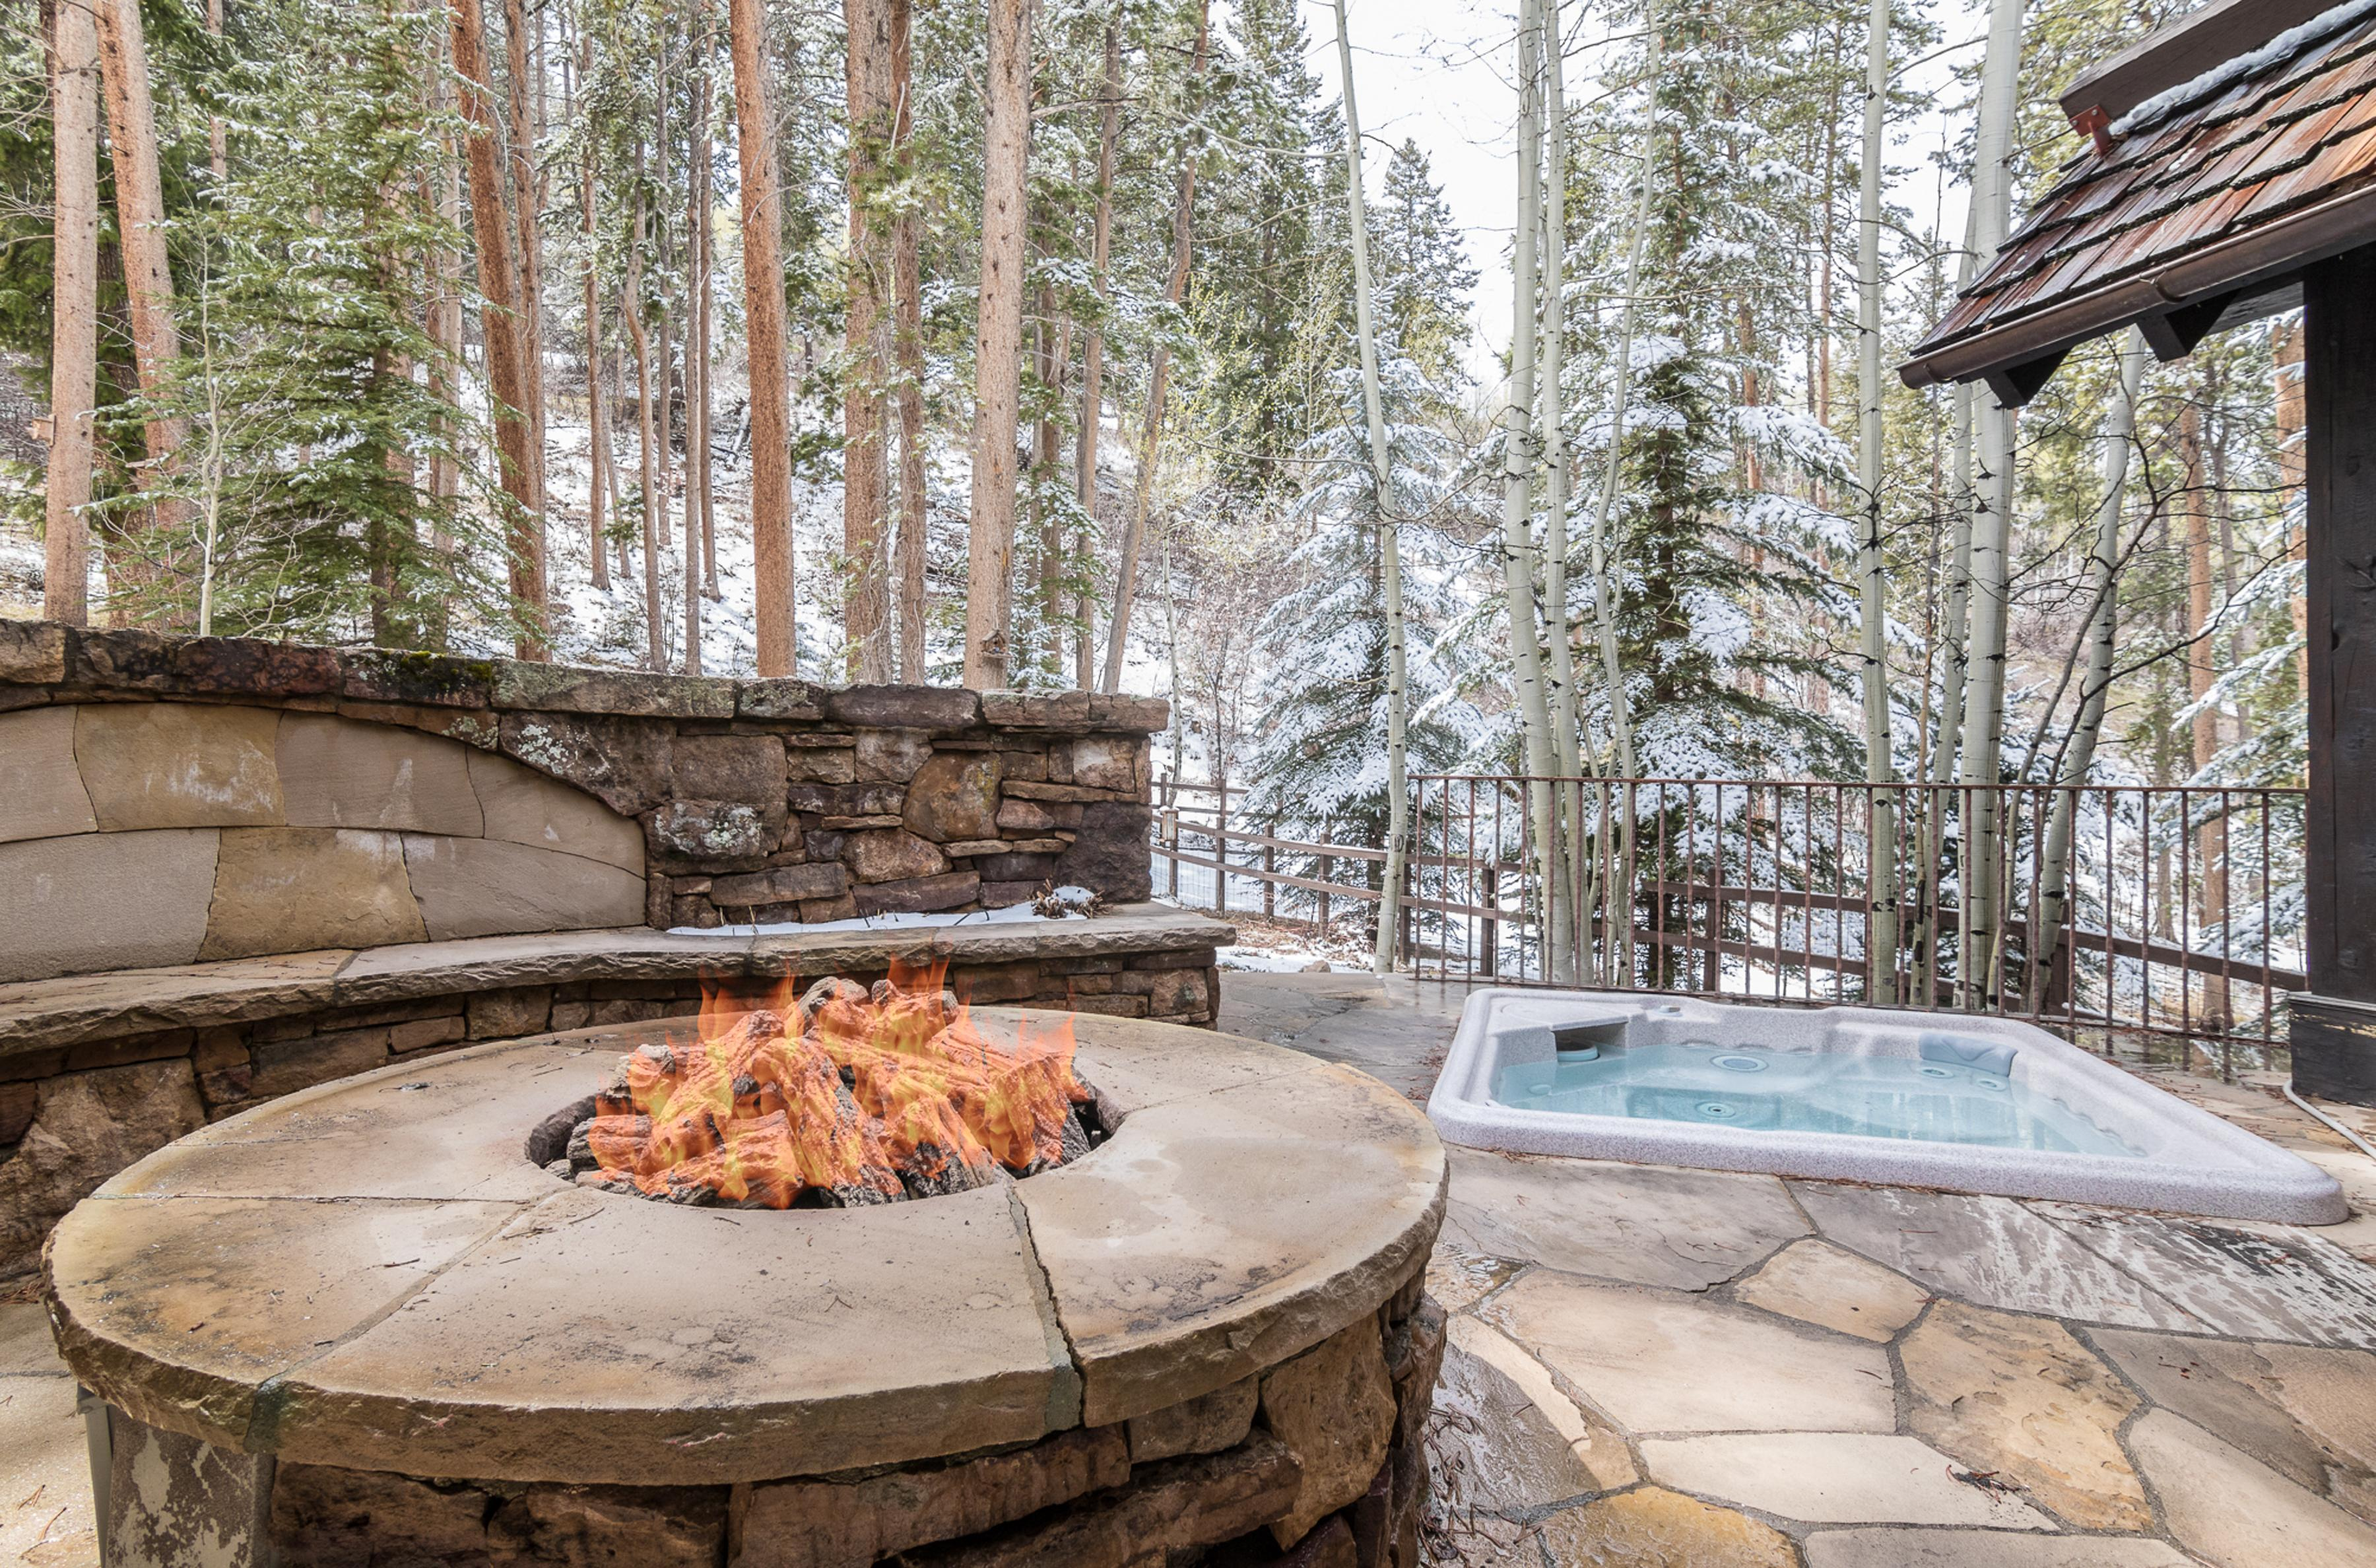 Huddle around the fire pit or take a soak in the hot tub on the patio.